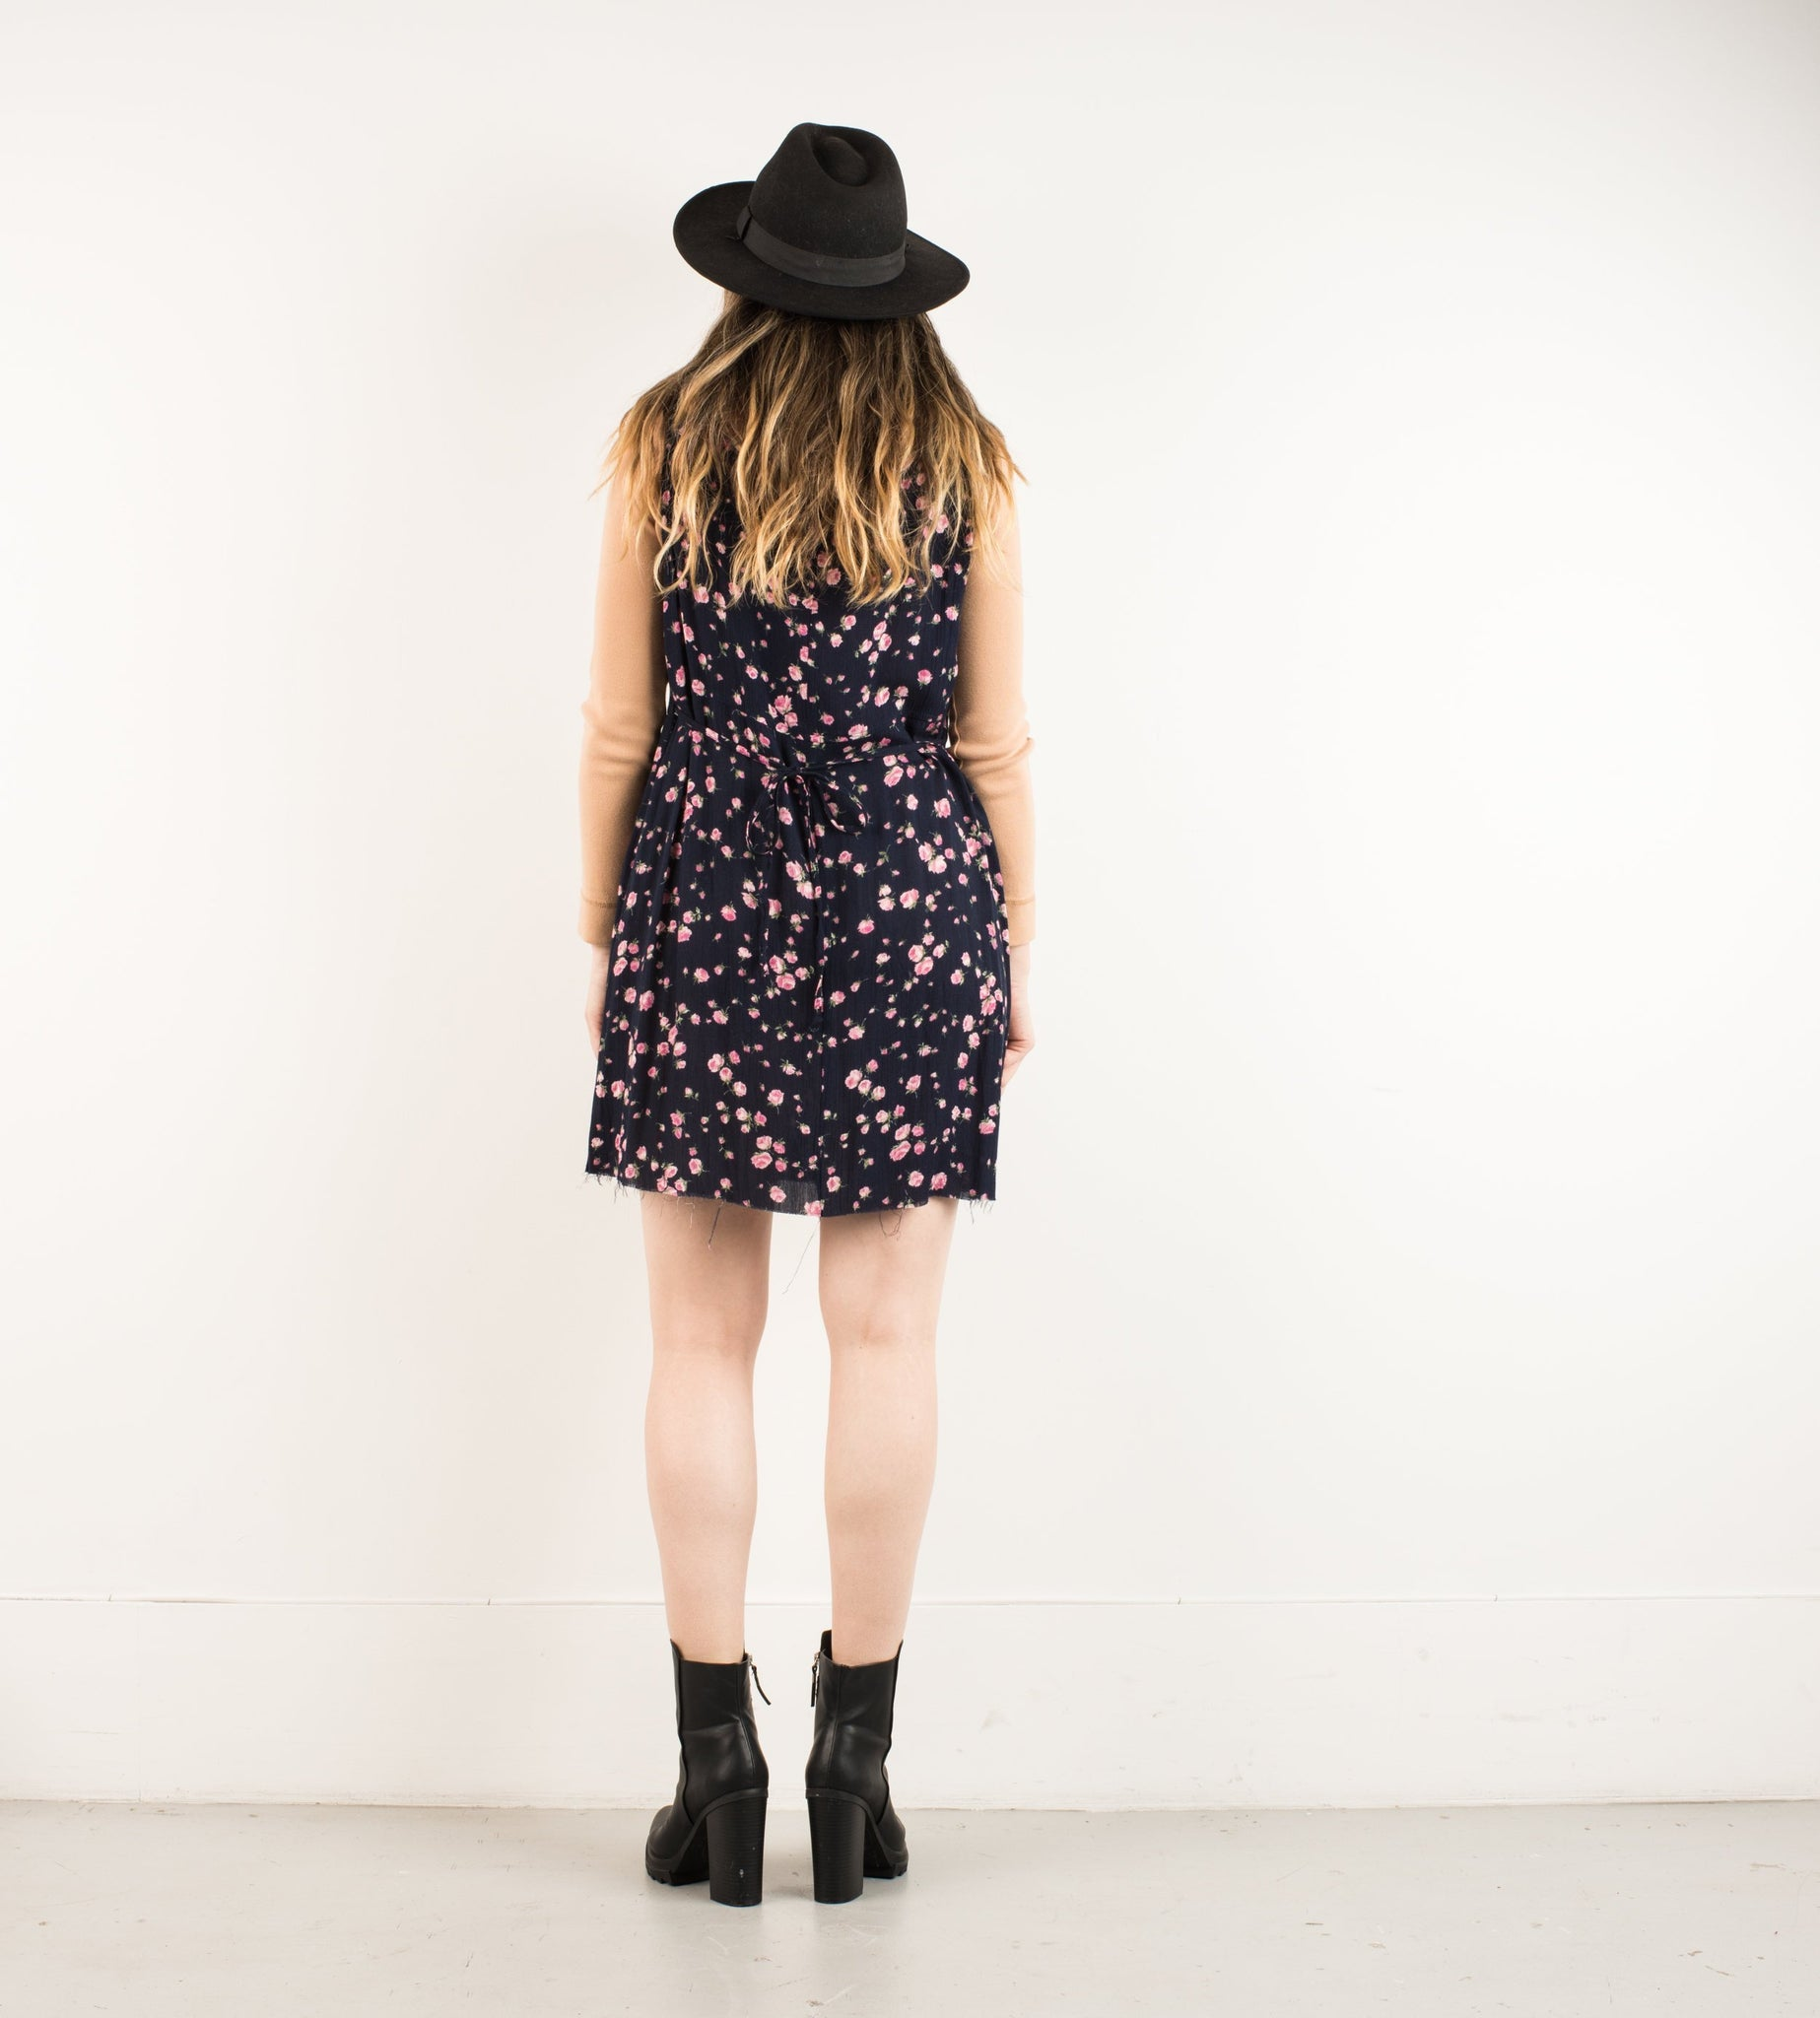 Vintage Black Floral Oversized Raw Hem Shirt Dress / S/M - Closed Caption